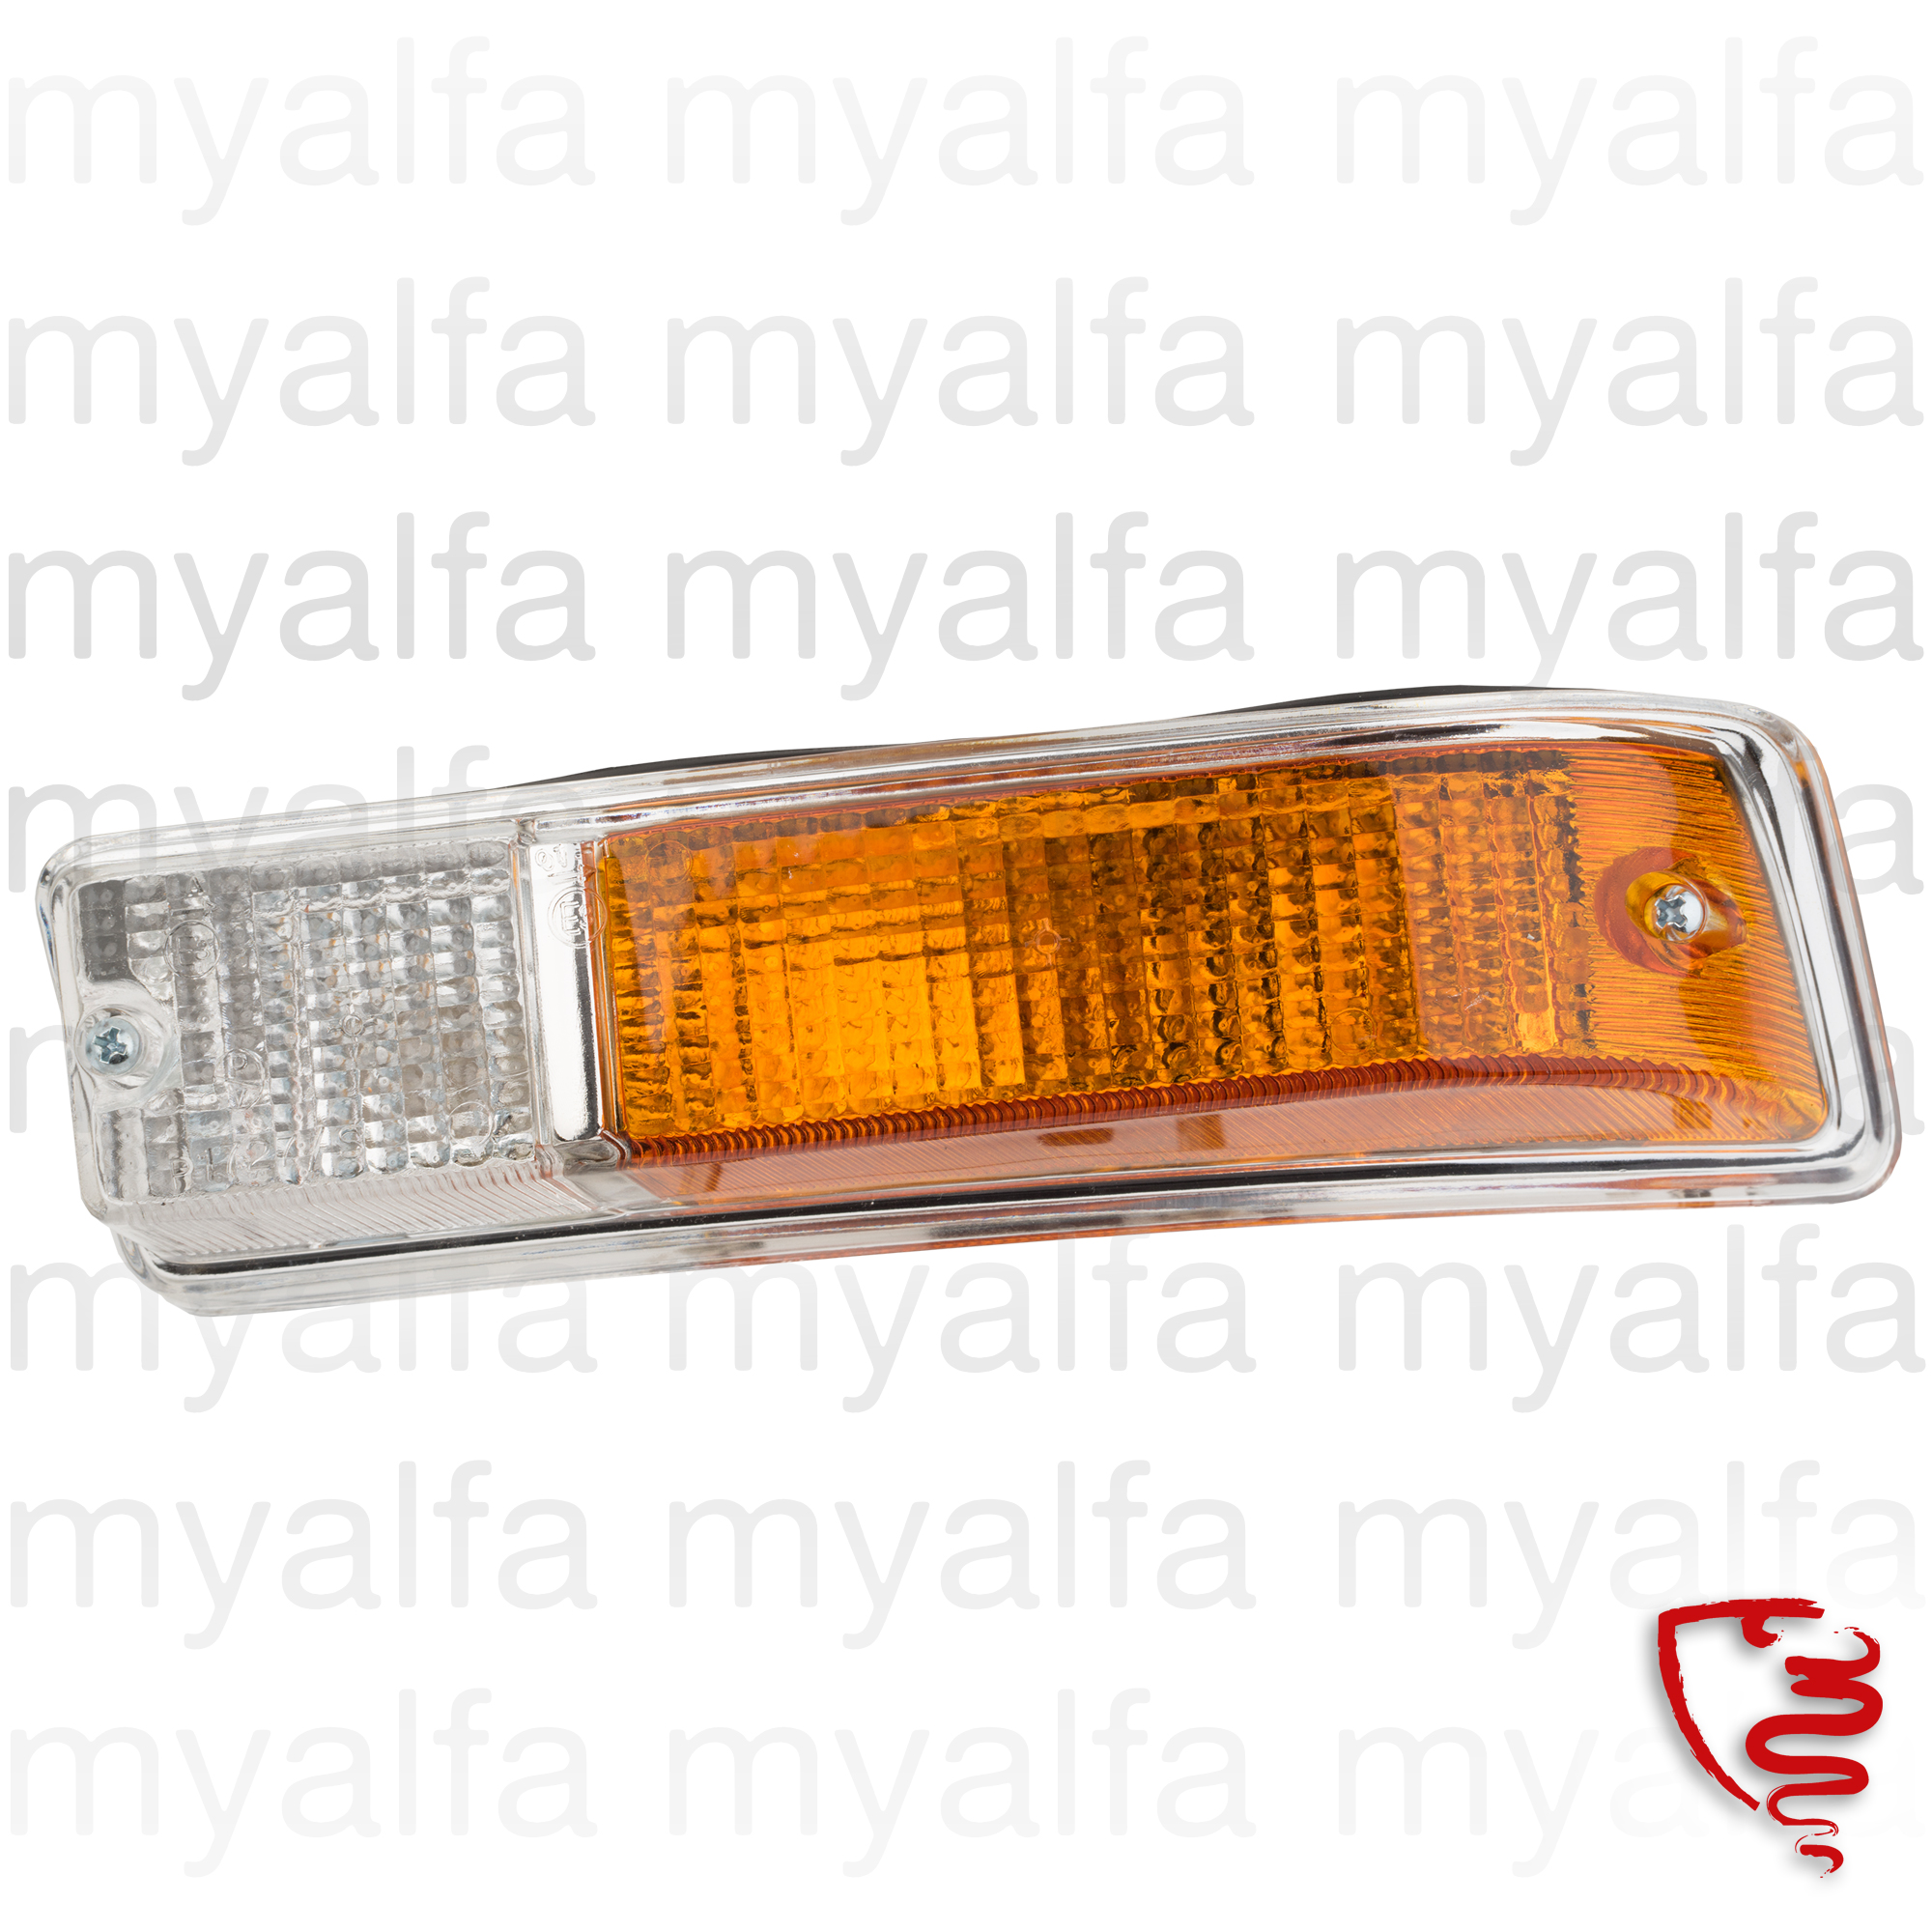 Beacon flashes and minimum front GT Bertone Esqº 2nd series for 105/115, Coupe, Body parts, Lighting, Indicators